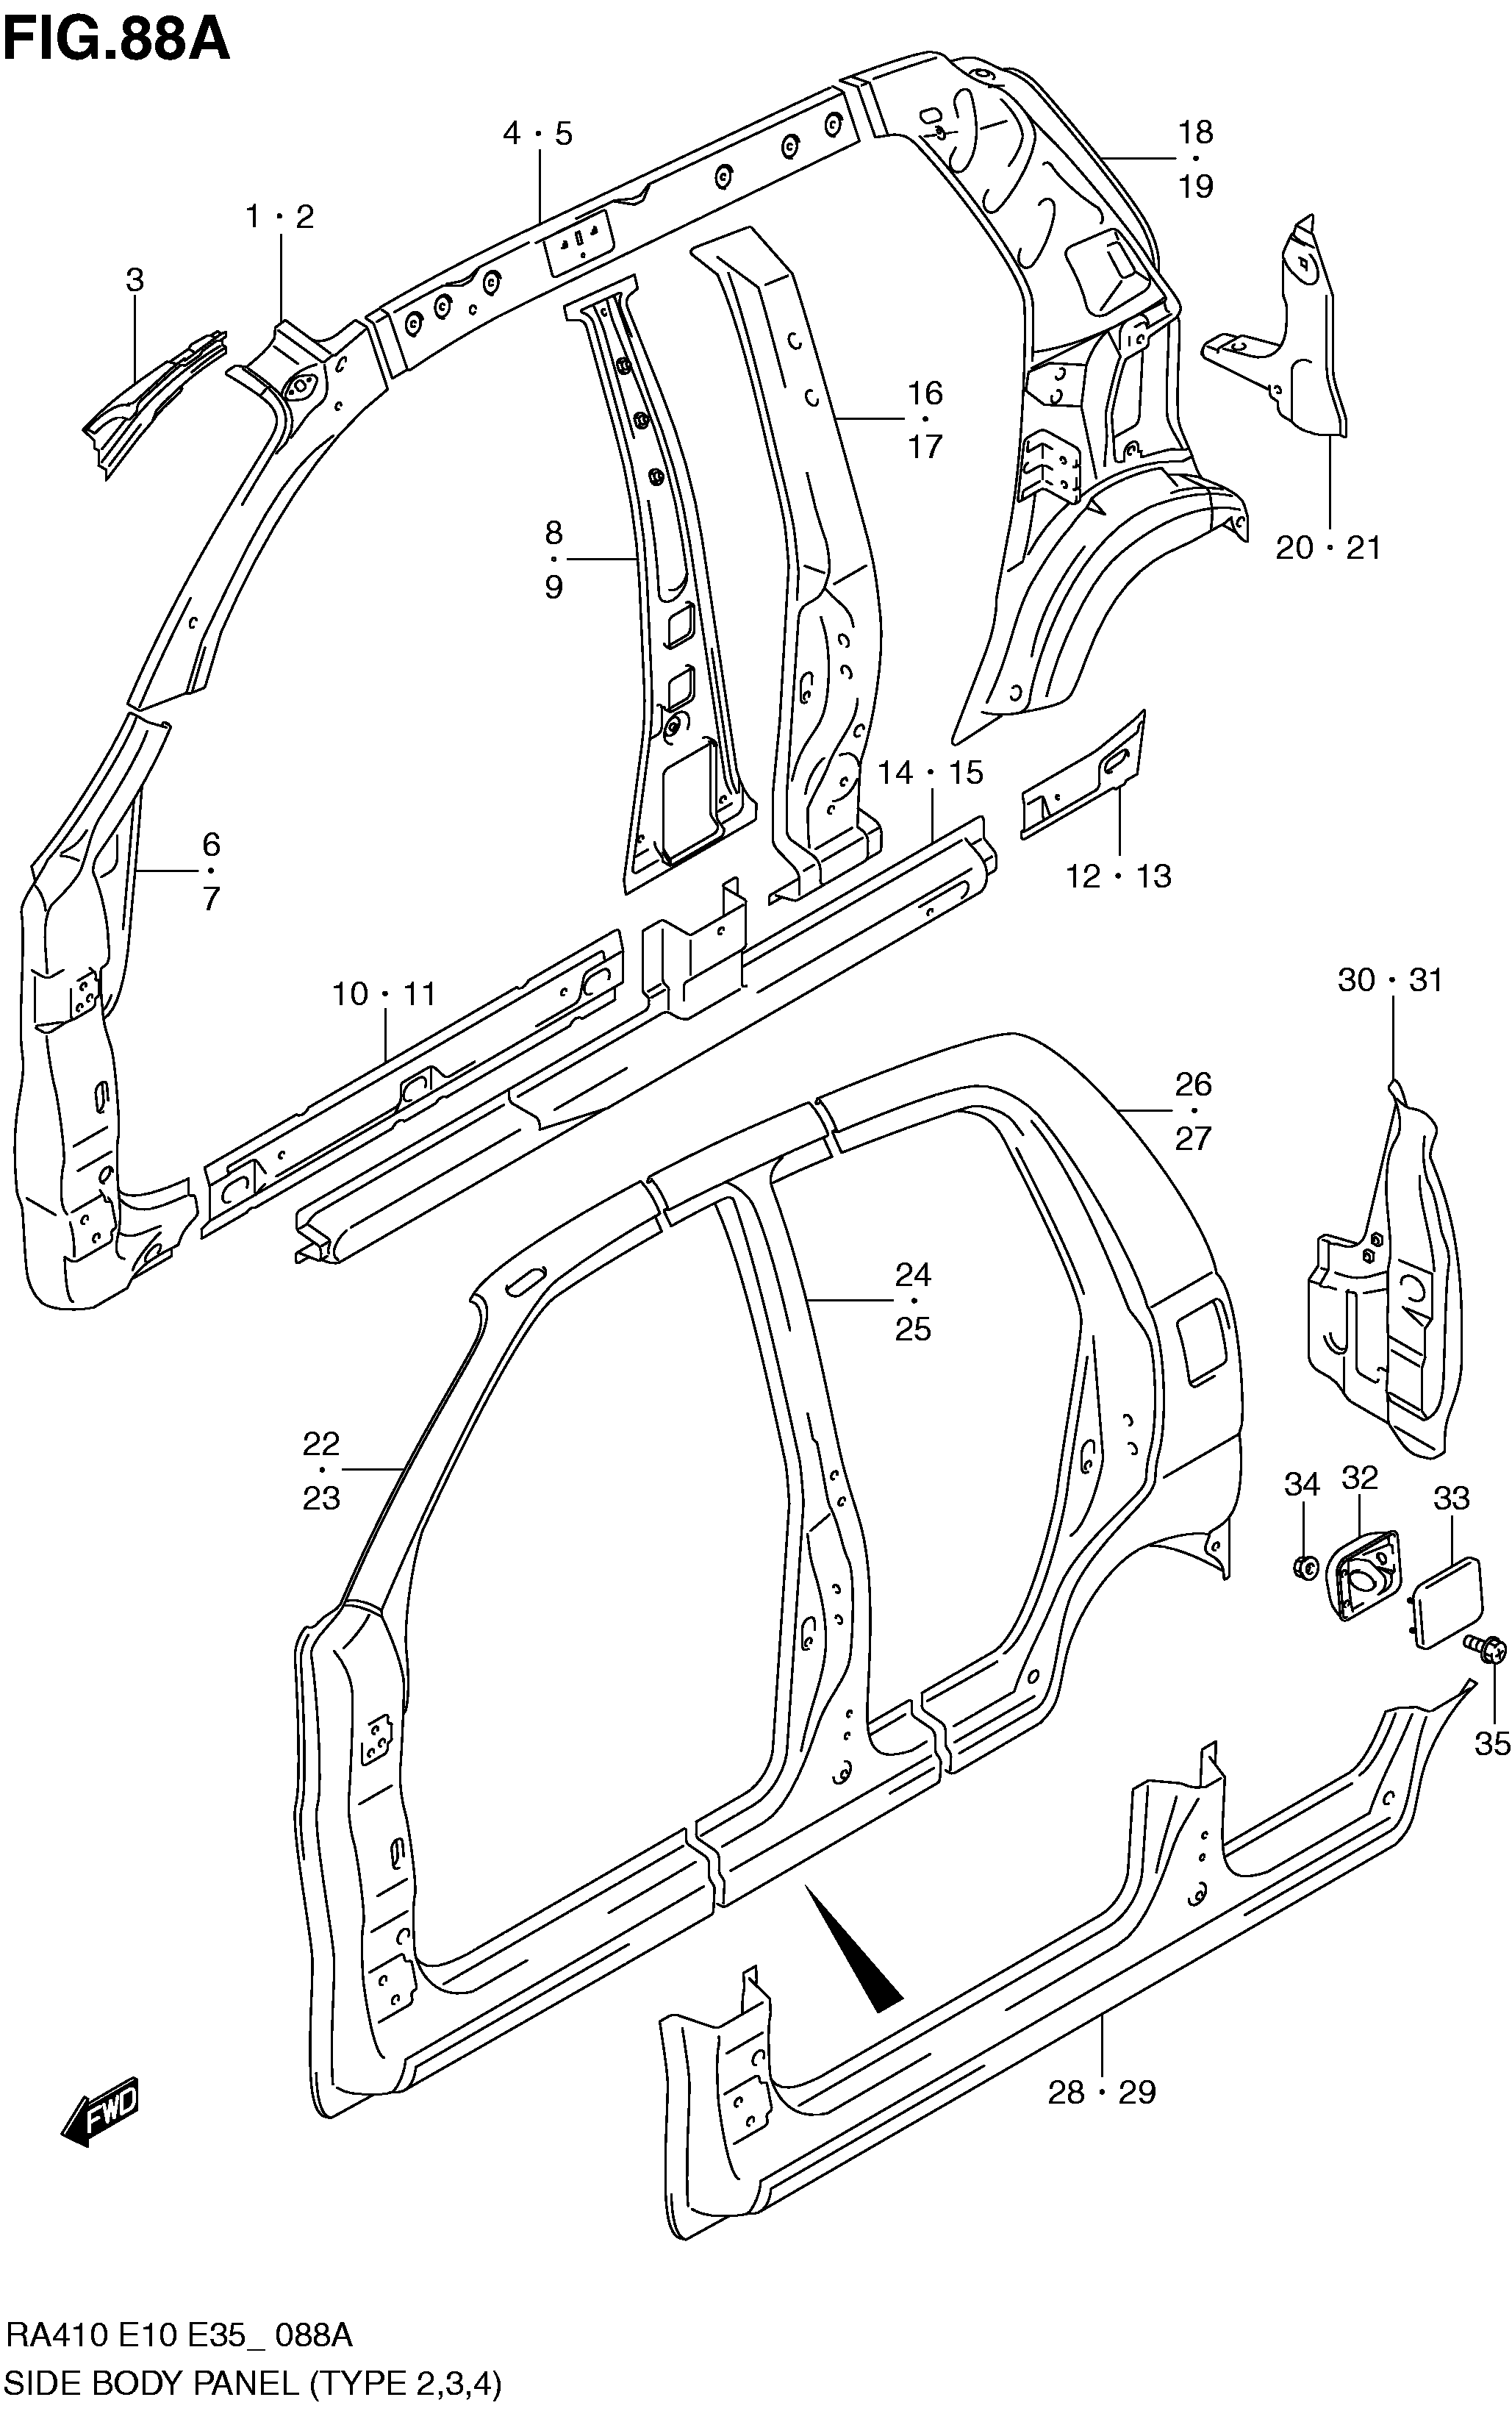 SIDE BODY PANEL (TYPE 2,3,4)